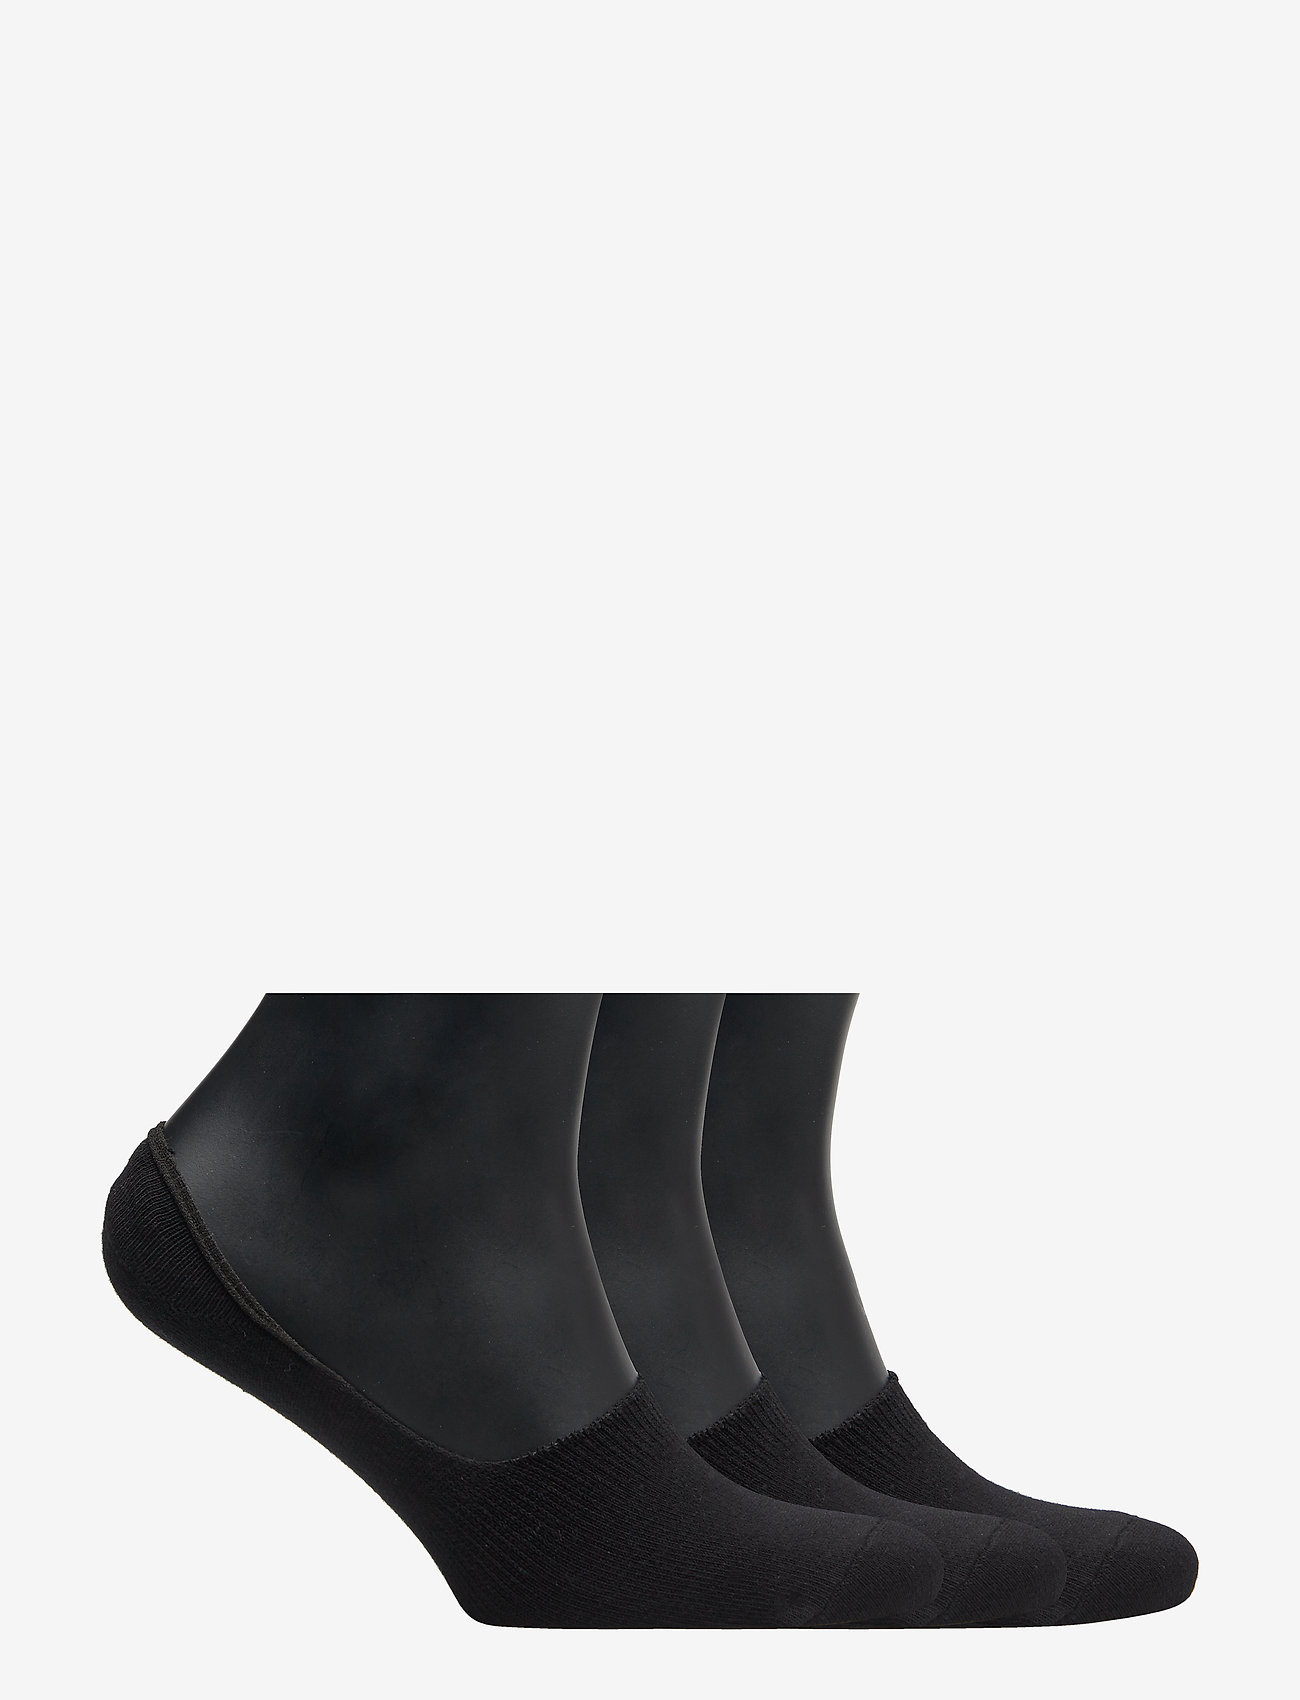 3 Pack Socklets - Men (Black) (15 €) - Boozt Merchandise rK1zi